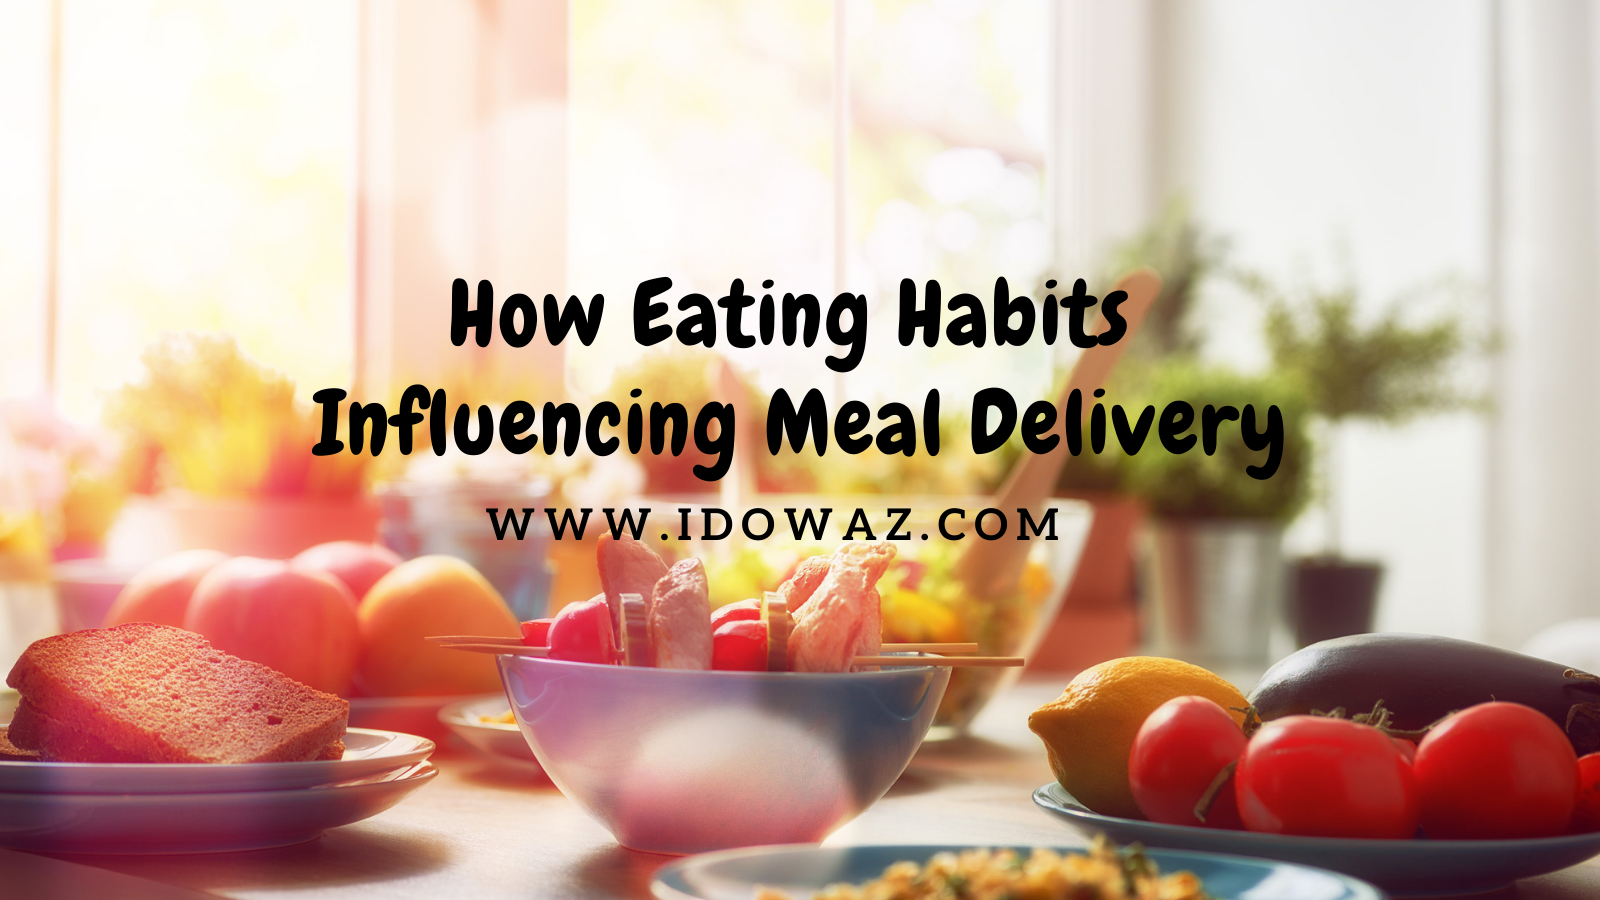 You are currently viewing How Eating Habits Influencing Meal Delivery